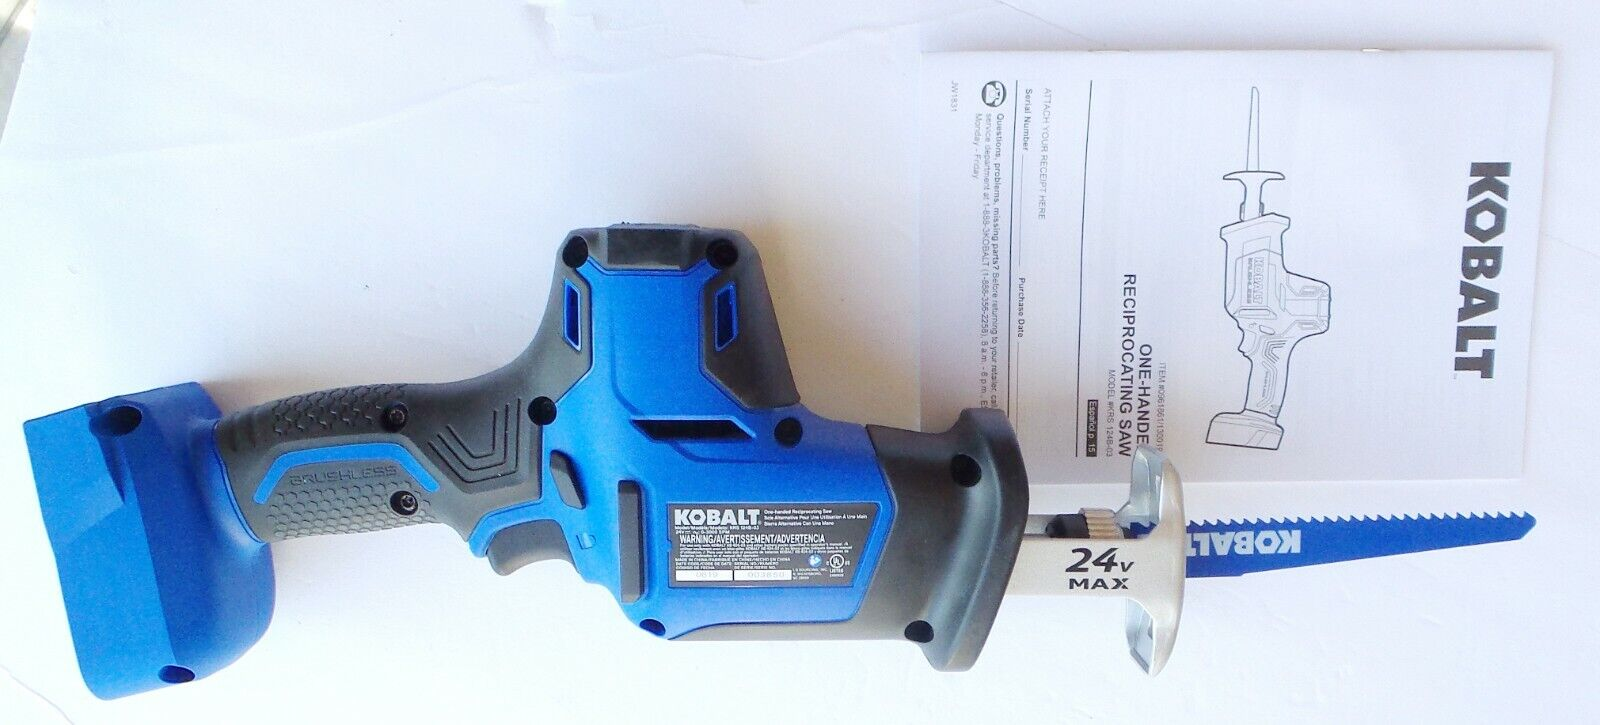 KOBALT KRS 124B-03 Brushless Reciprcating Saw Tool Only!